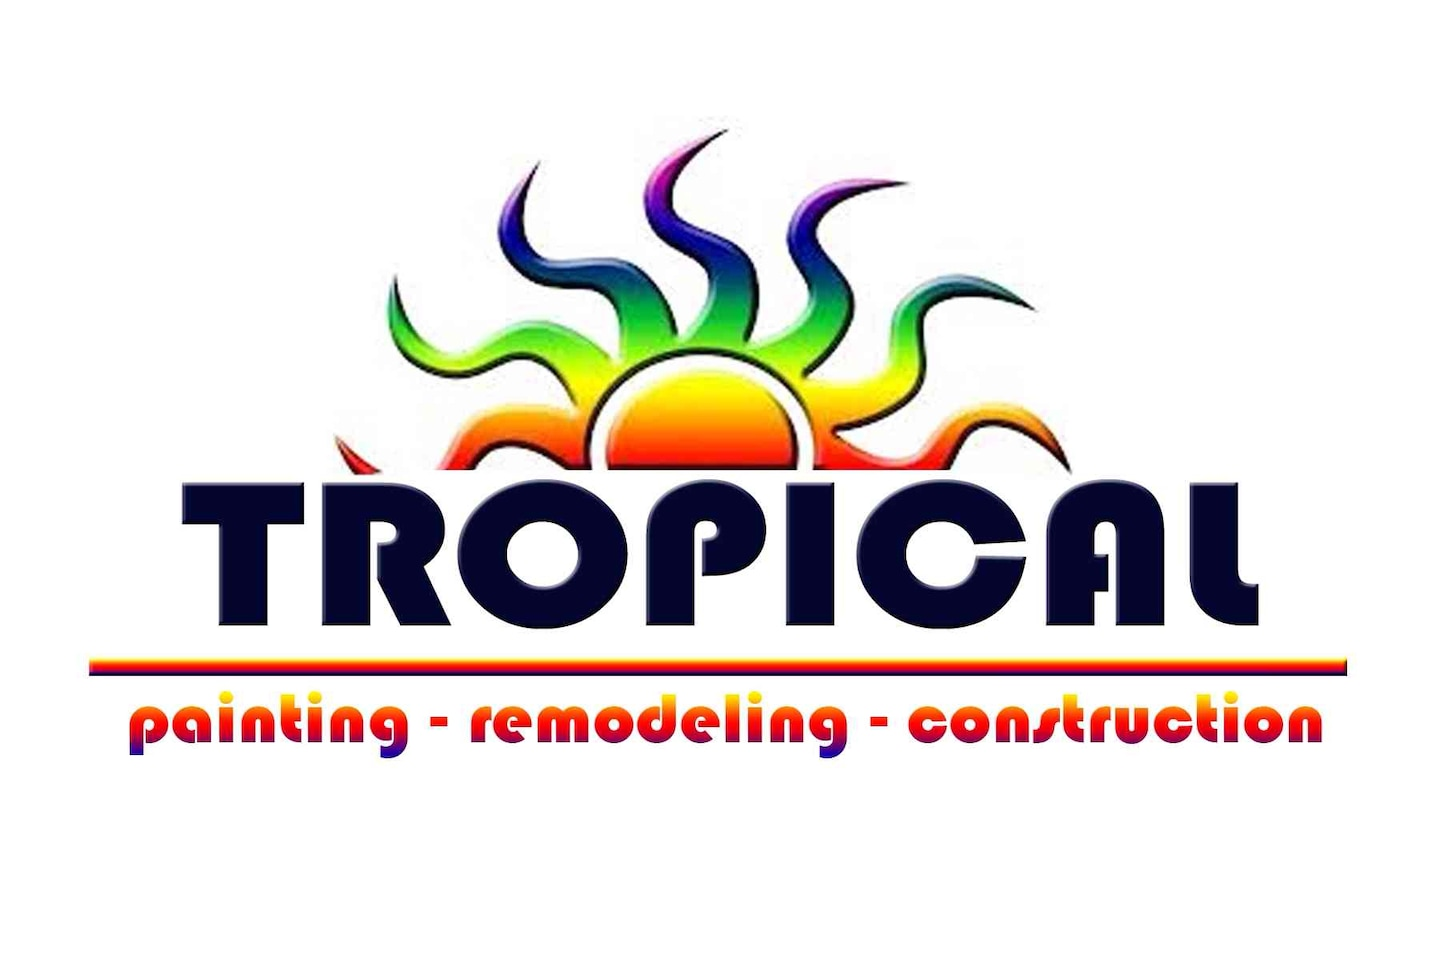 Tropical Painting & General Construction Company logo